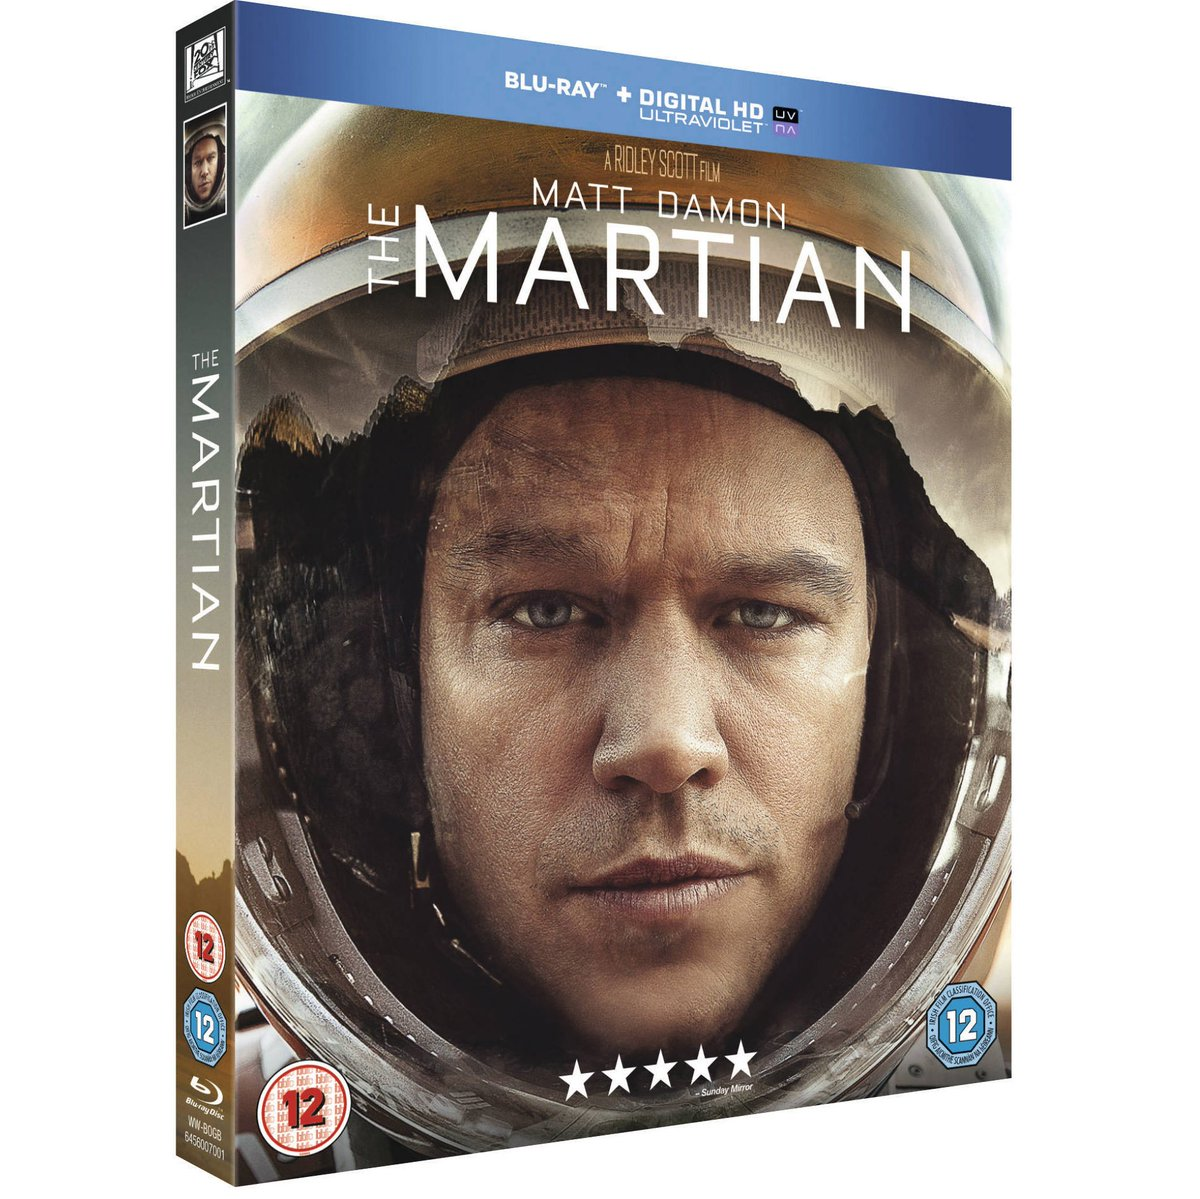 Win! Follow @CultBoxTV and RT for a chance to win one of 3 copies of 'The Martian' - https://t.co/NNQXlUdcgy https://t.co/UIzqIDtx2e